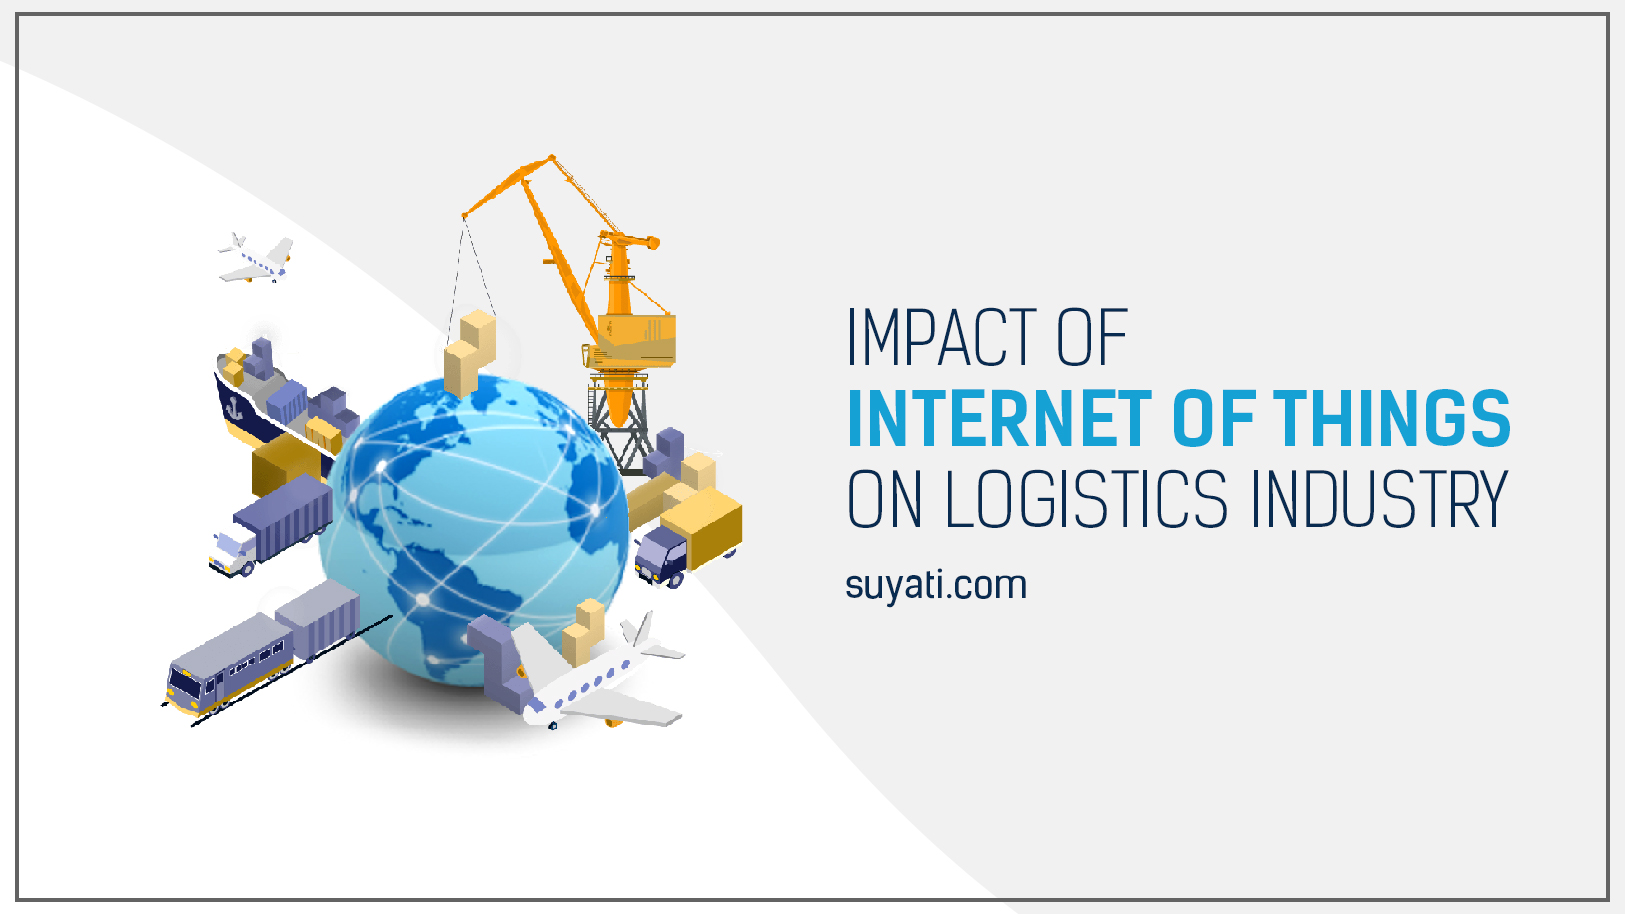 Impact of Internet of Things on Logistics Industry